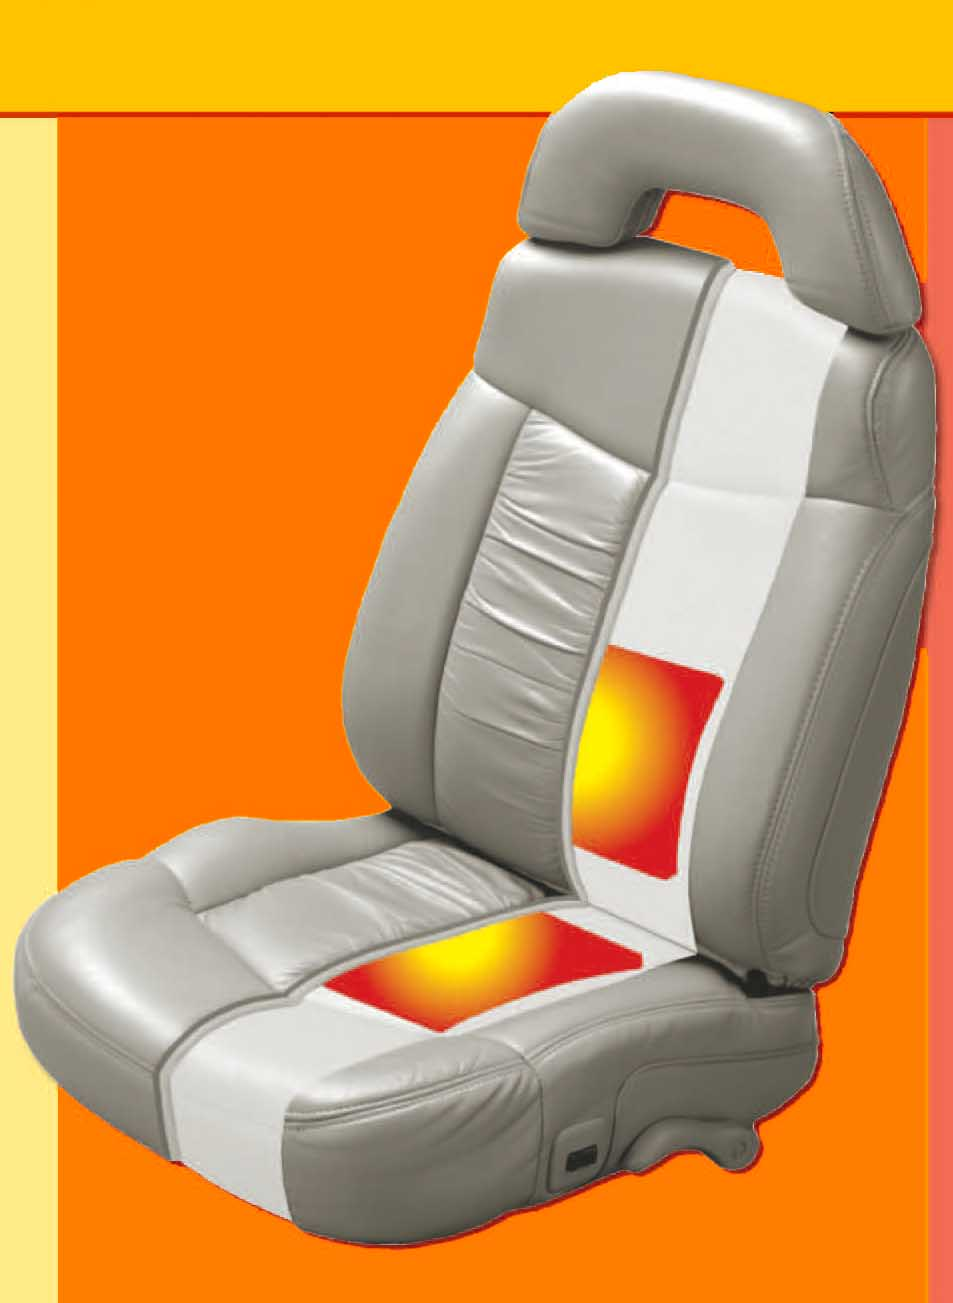 Services - Automotive - Seat Heater